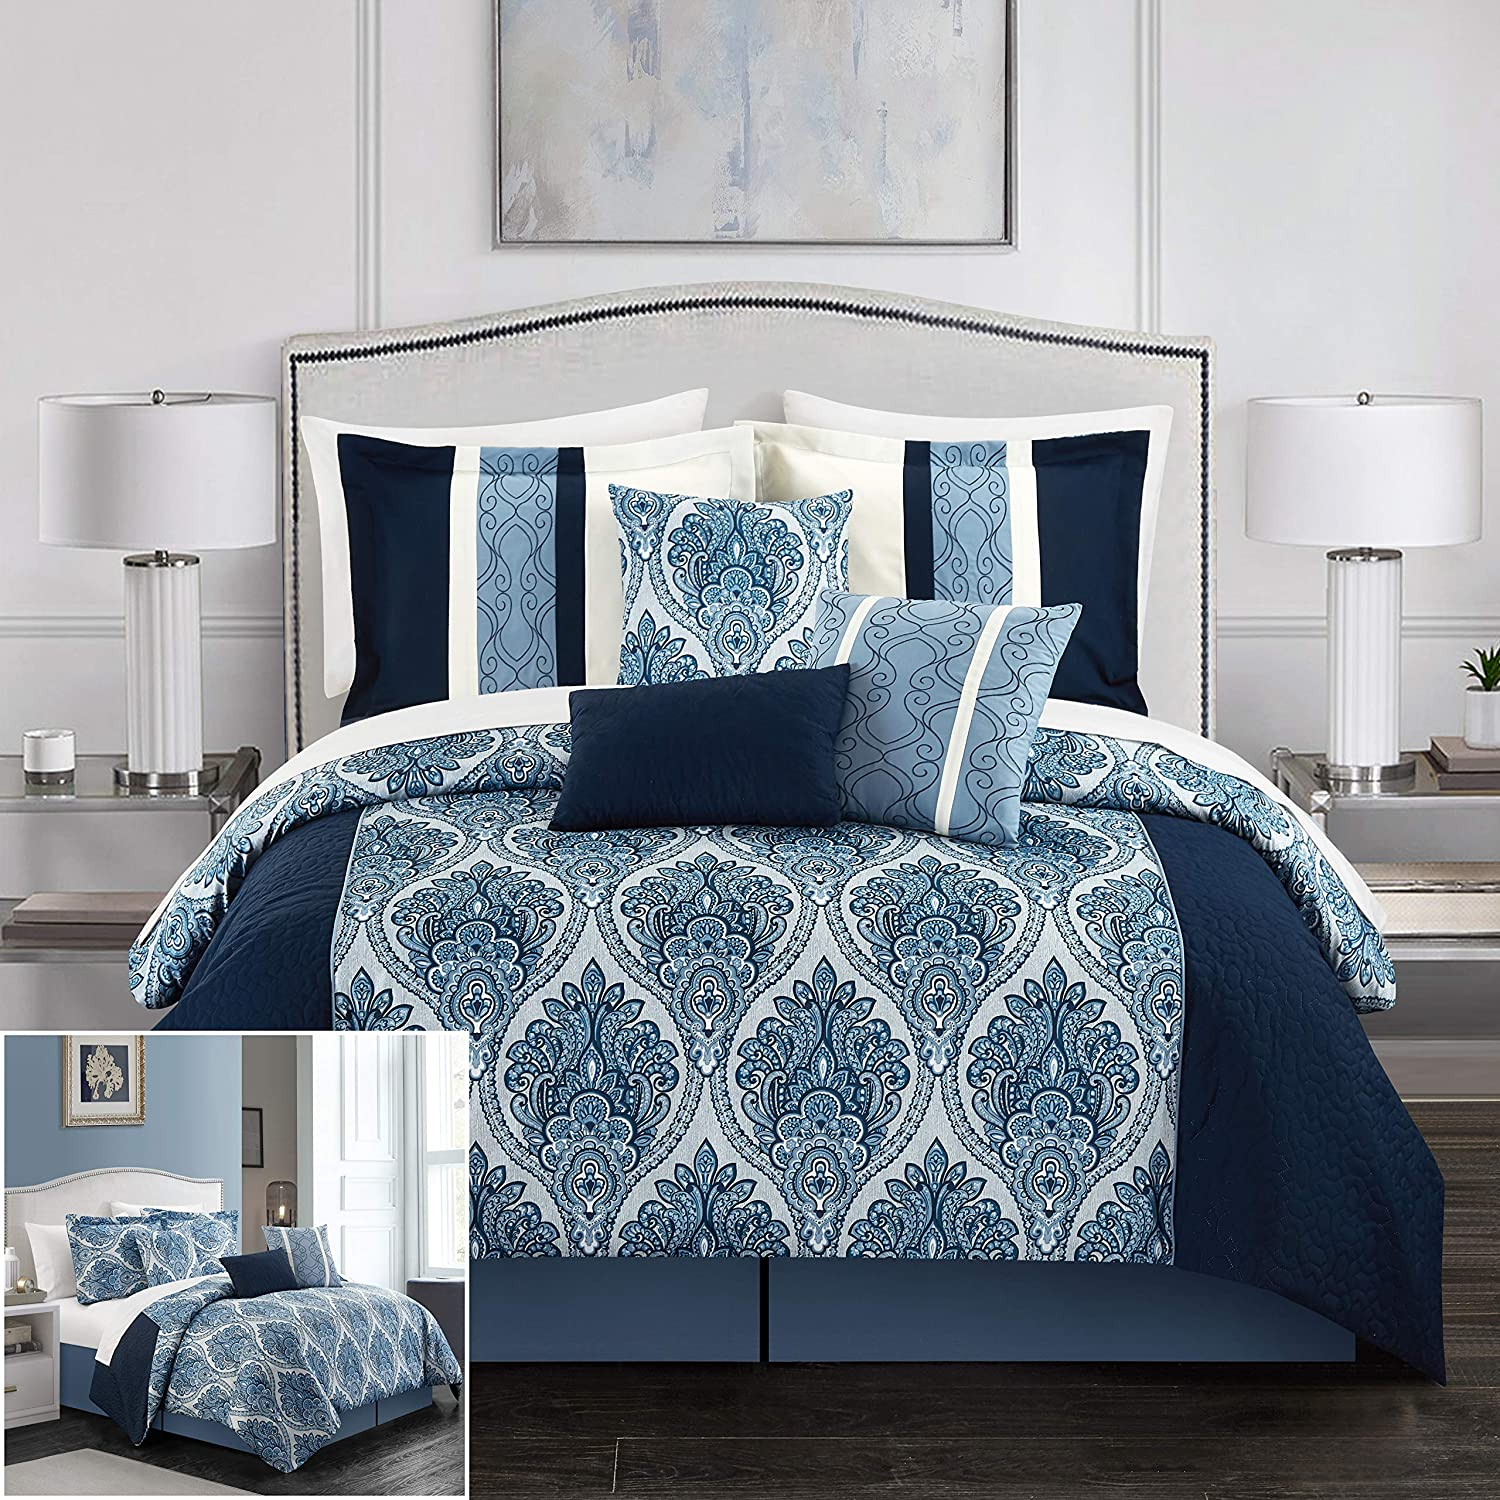 Chic Home BCS11718-AN Phantogram 7 Piece Comforter Set Reversible Two-Tone Damask Pattern Geometric Quilting Bed Skirt Decorative Pillows Shams Included, King, Navy